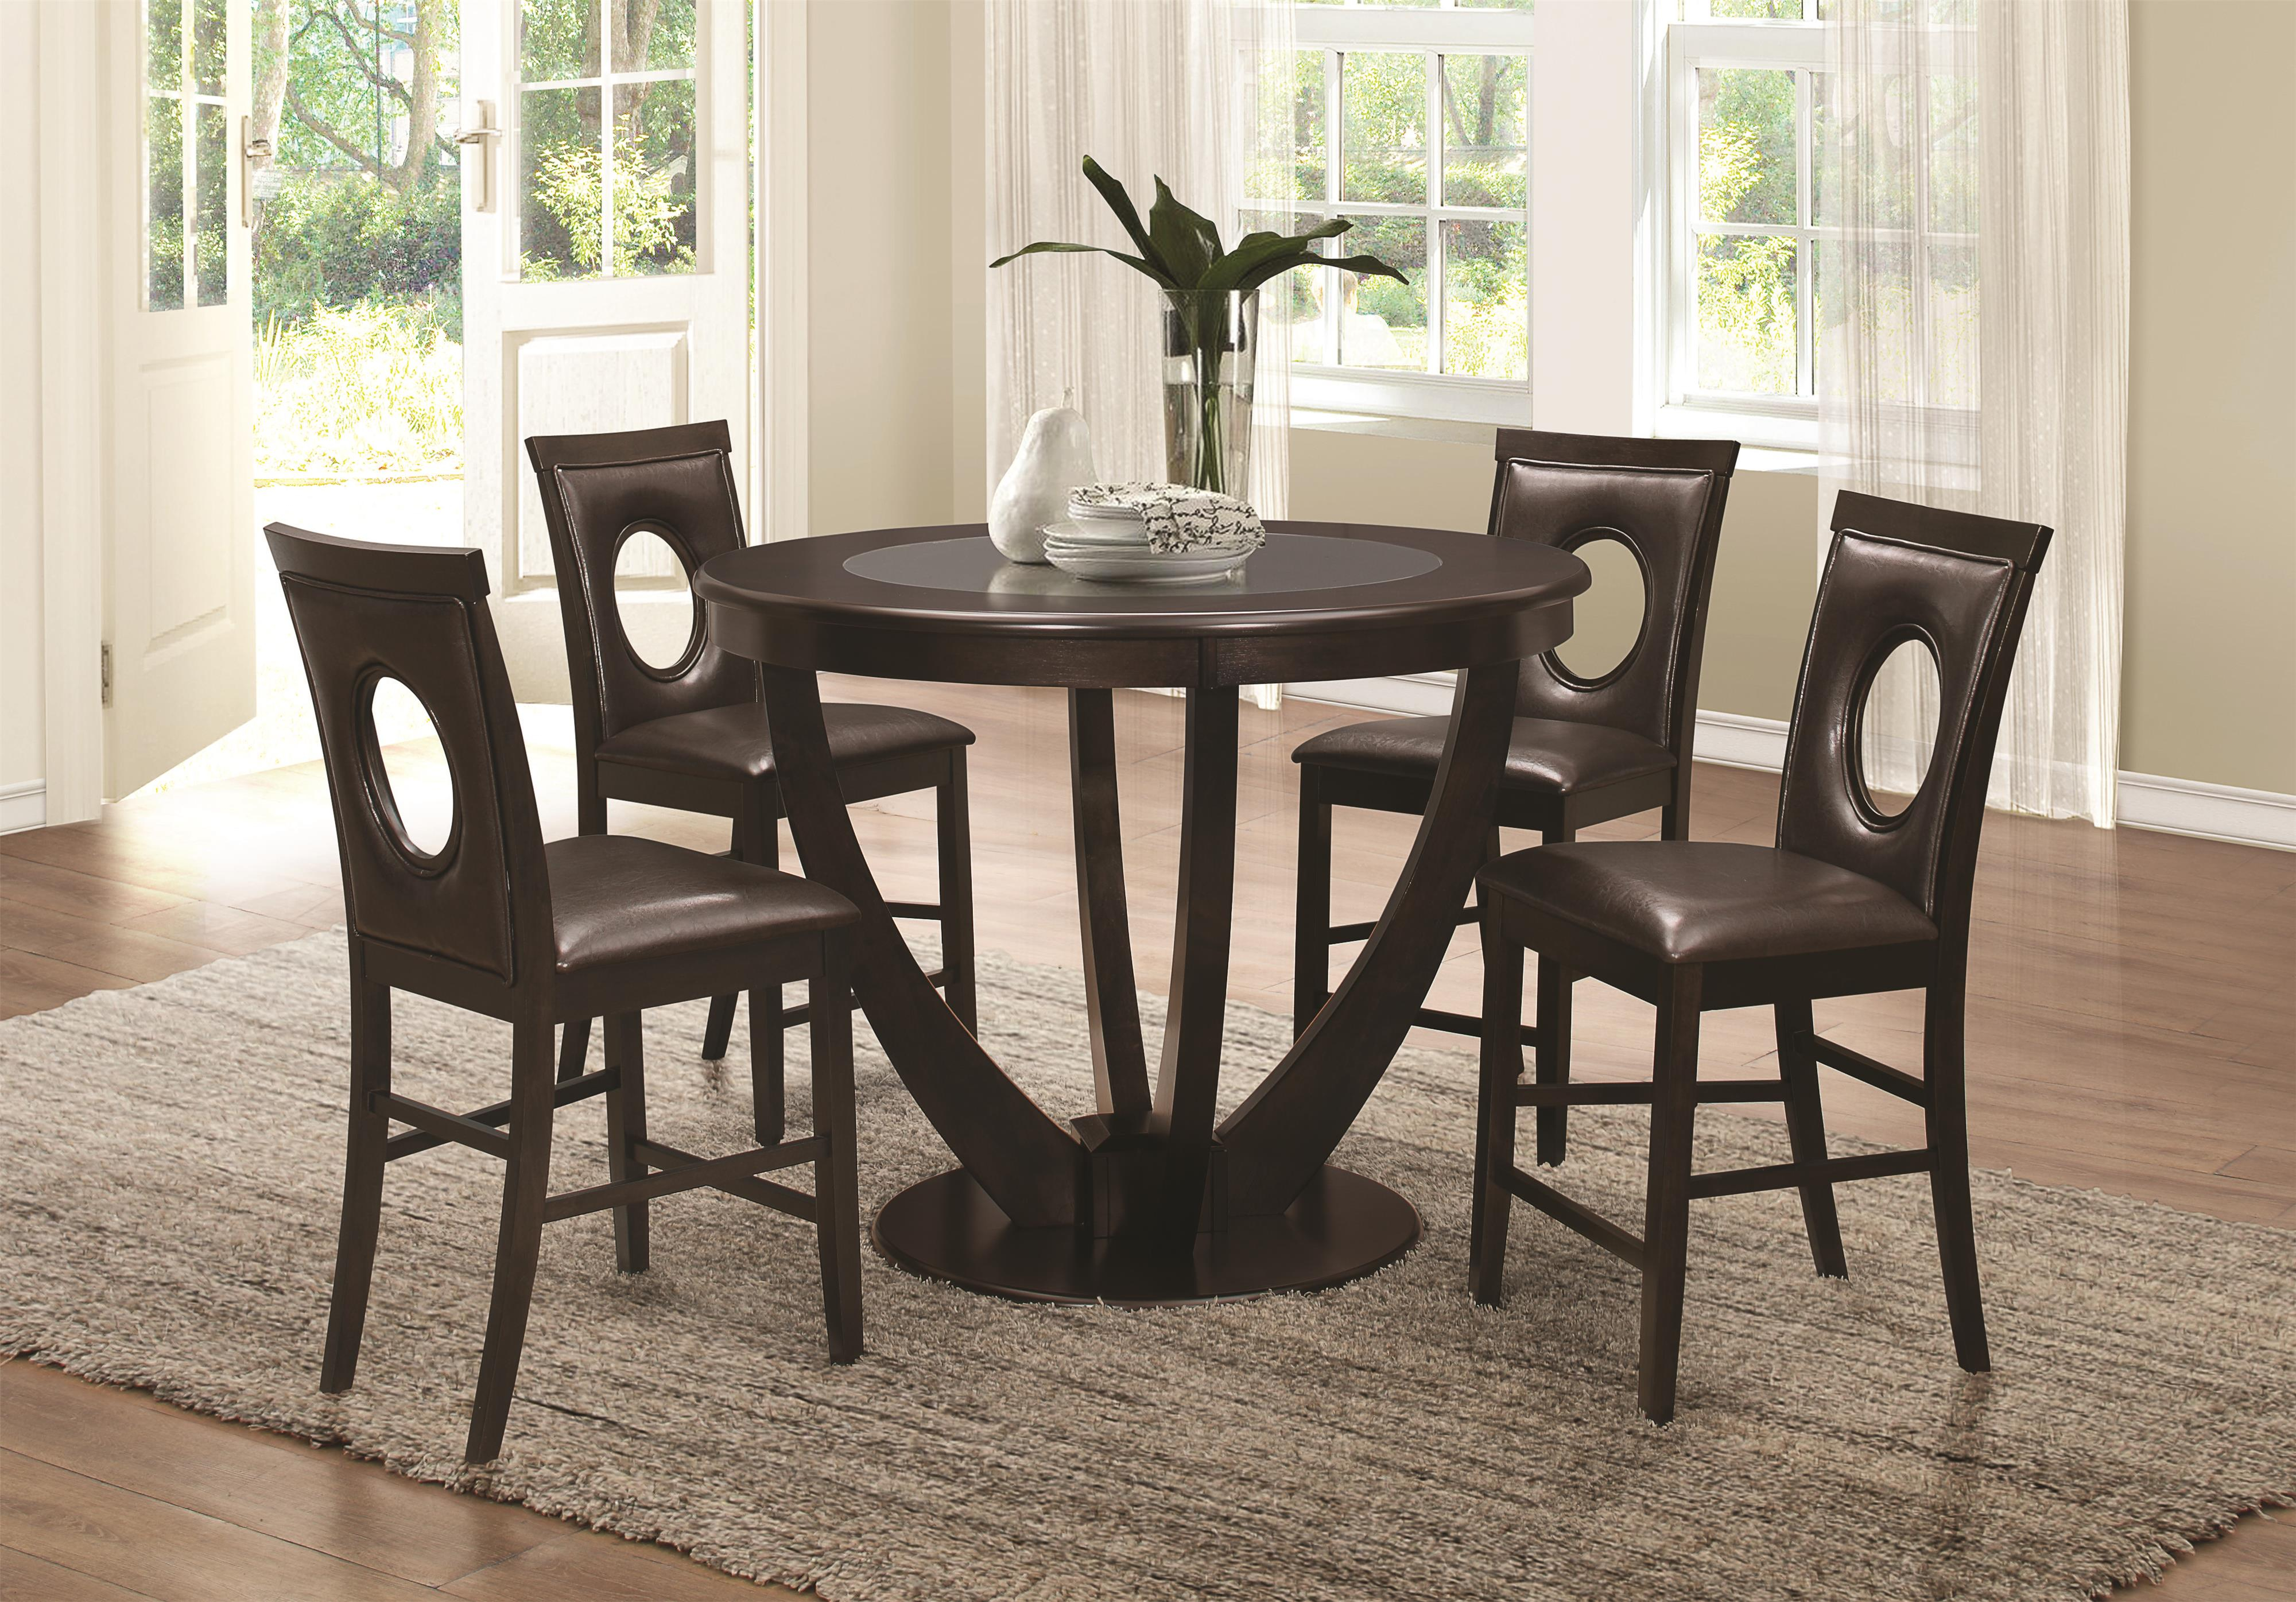 Coaster Stapleton Counter Height Table and Chair Set - Item Number: 106748+4x49